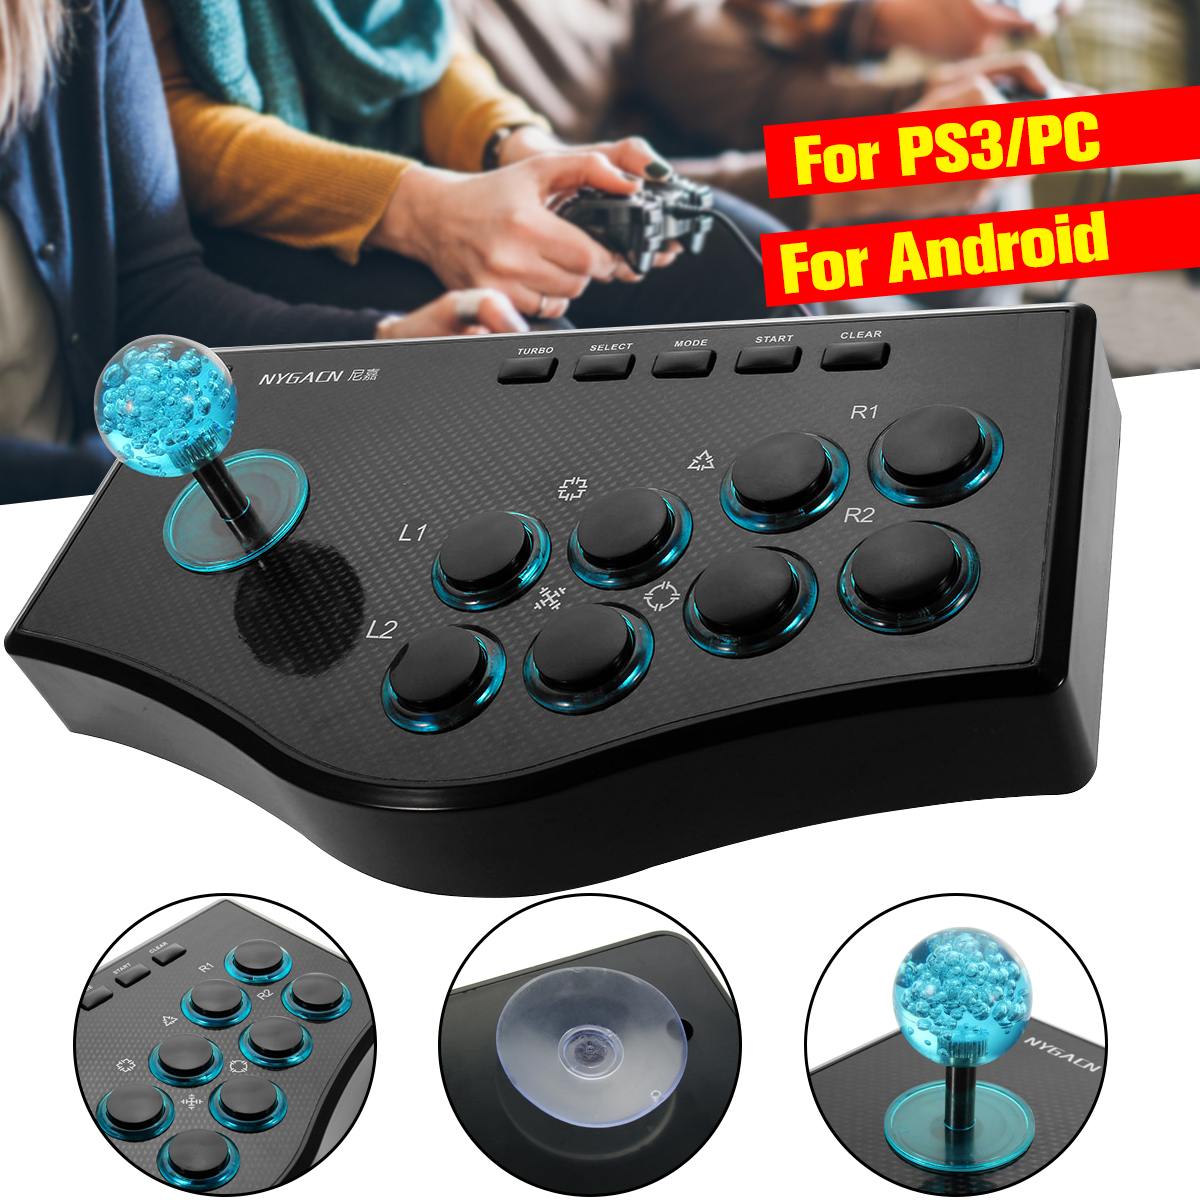 USB Rocker Game Controller Arcade Joystick Gamepad Harci Stick PS3 / PC-hez Android Plug and Play Utcai harci érzés